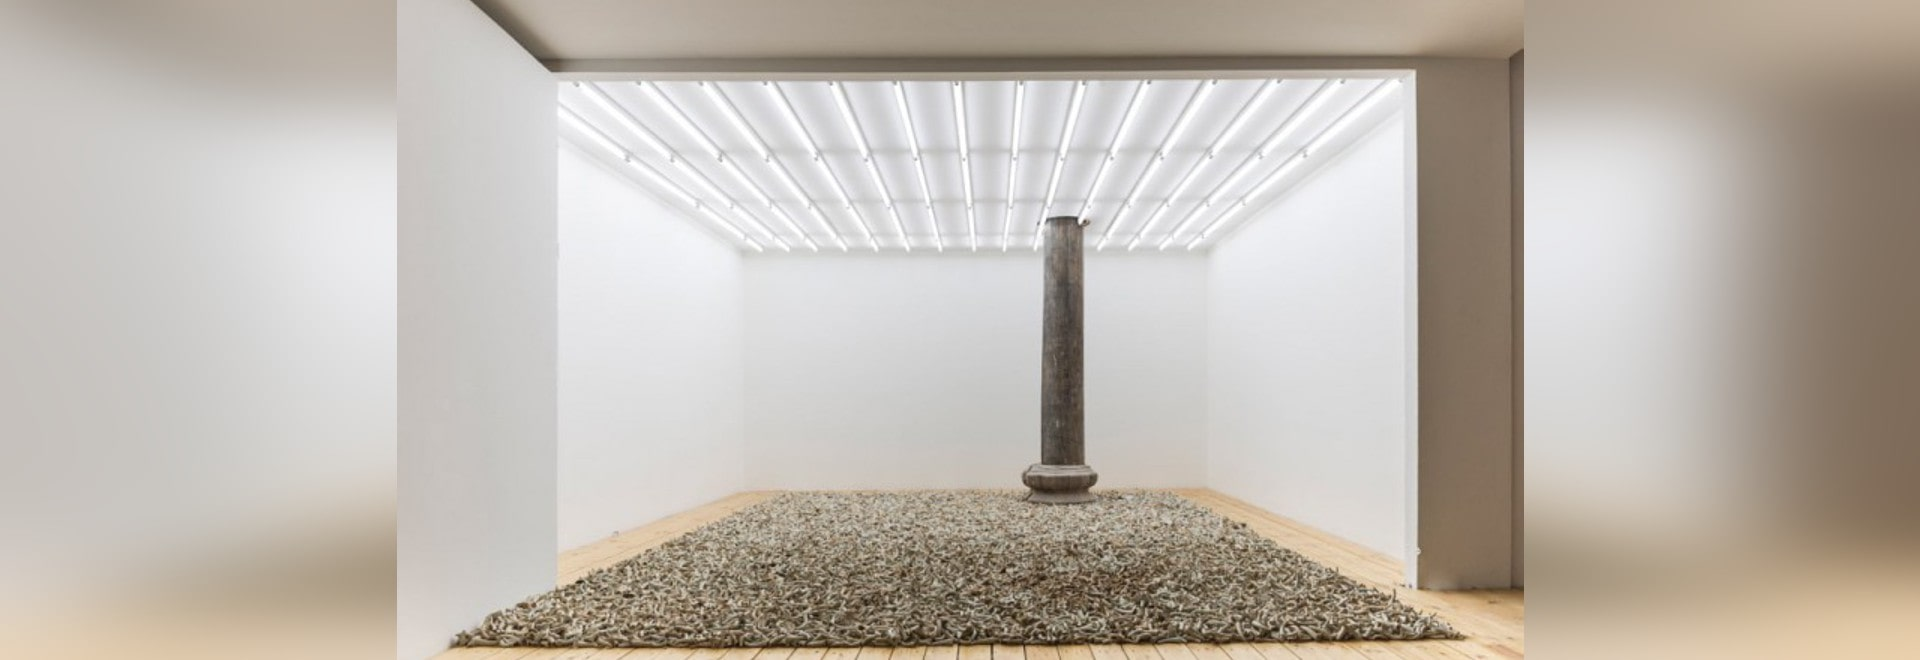 AI WEIWEI SHOWS FIRST SOLO EXHIBITION IN CHINA